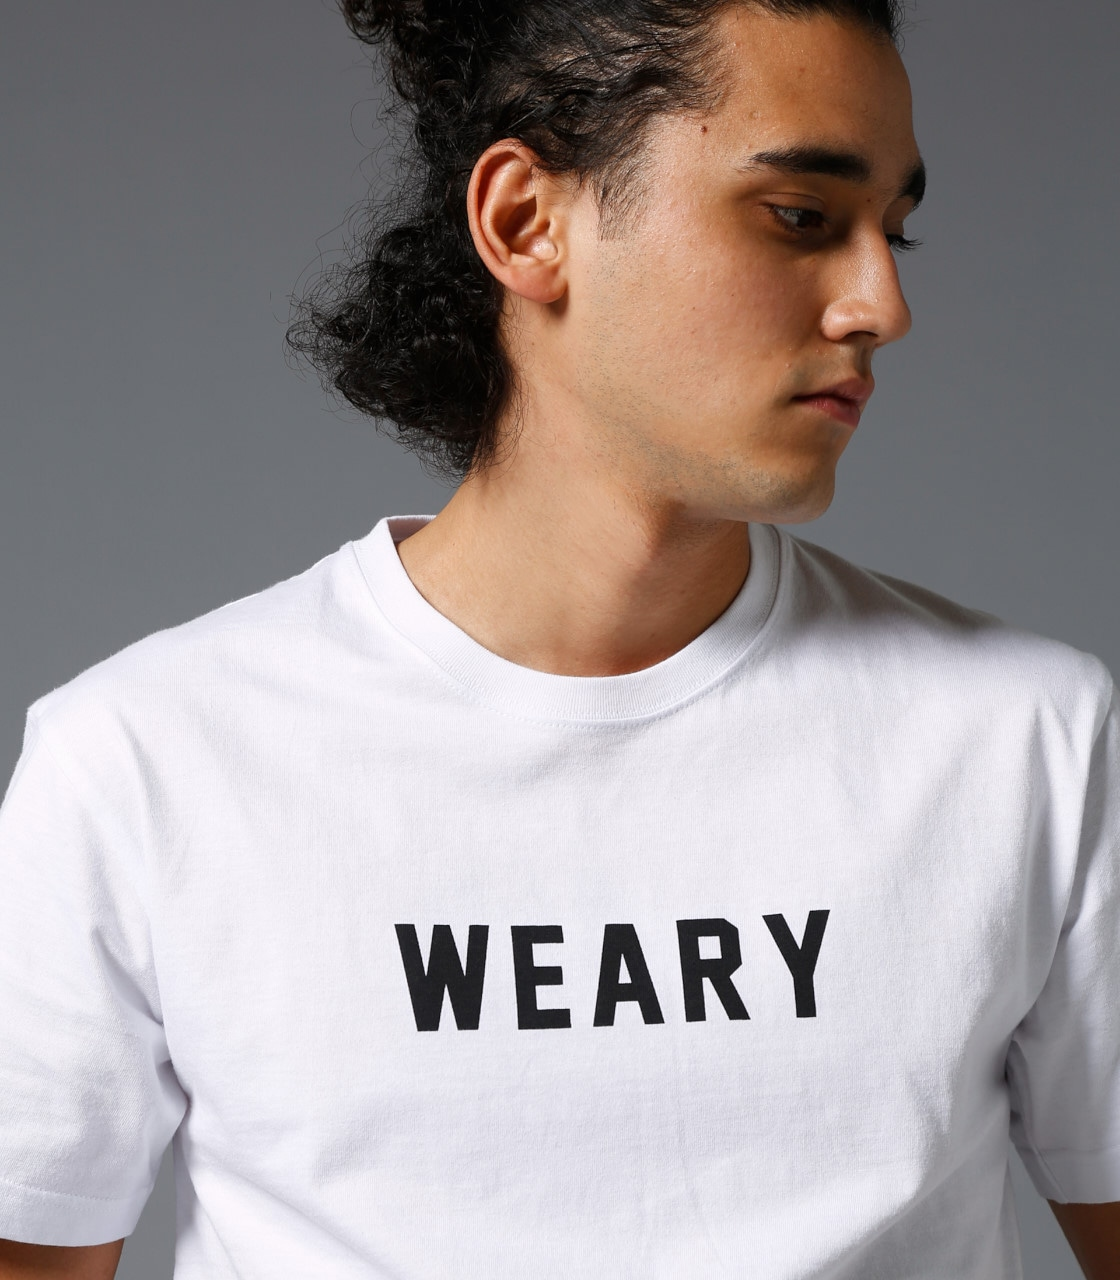 【AZUL BY MOUSSY】WEARY 半袖T 詳細画像 WHT 2